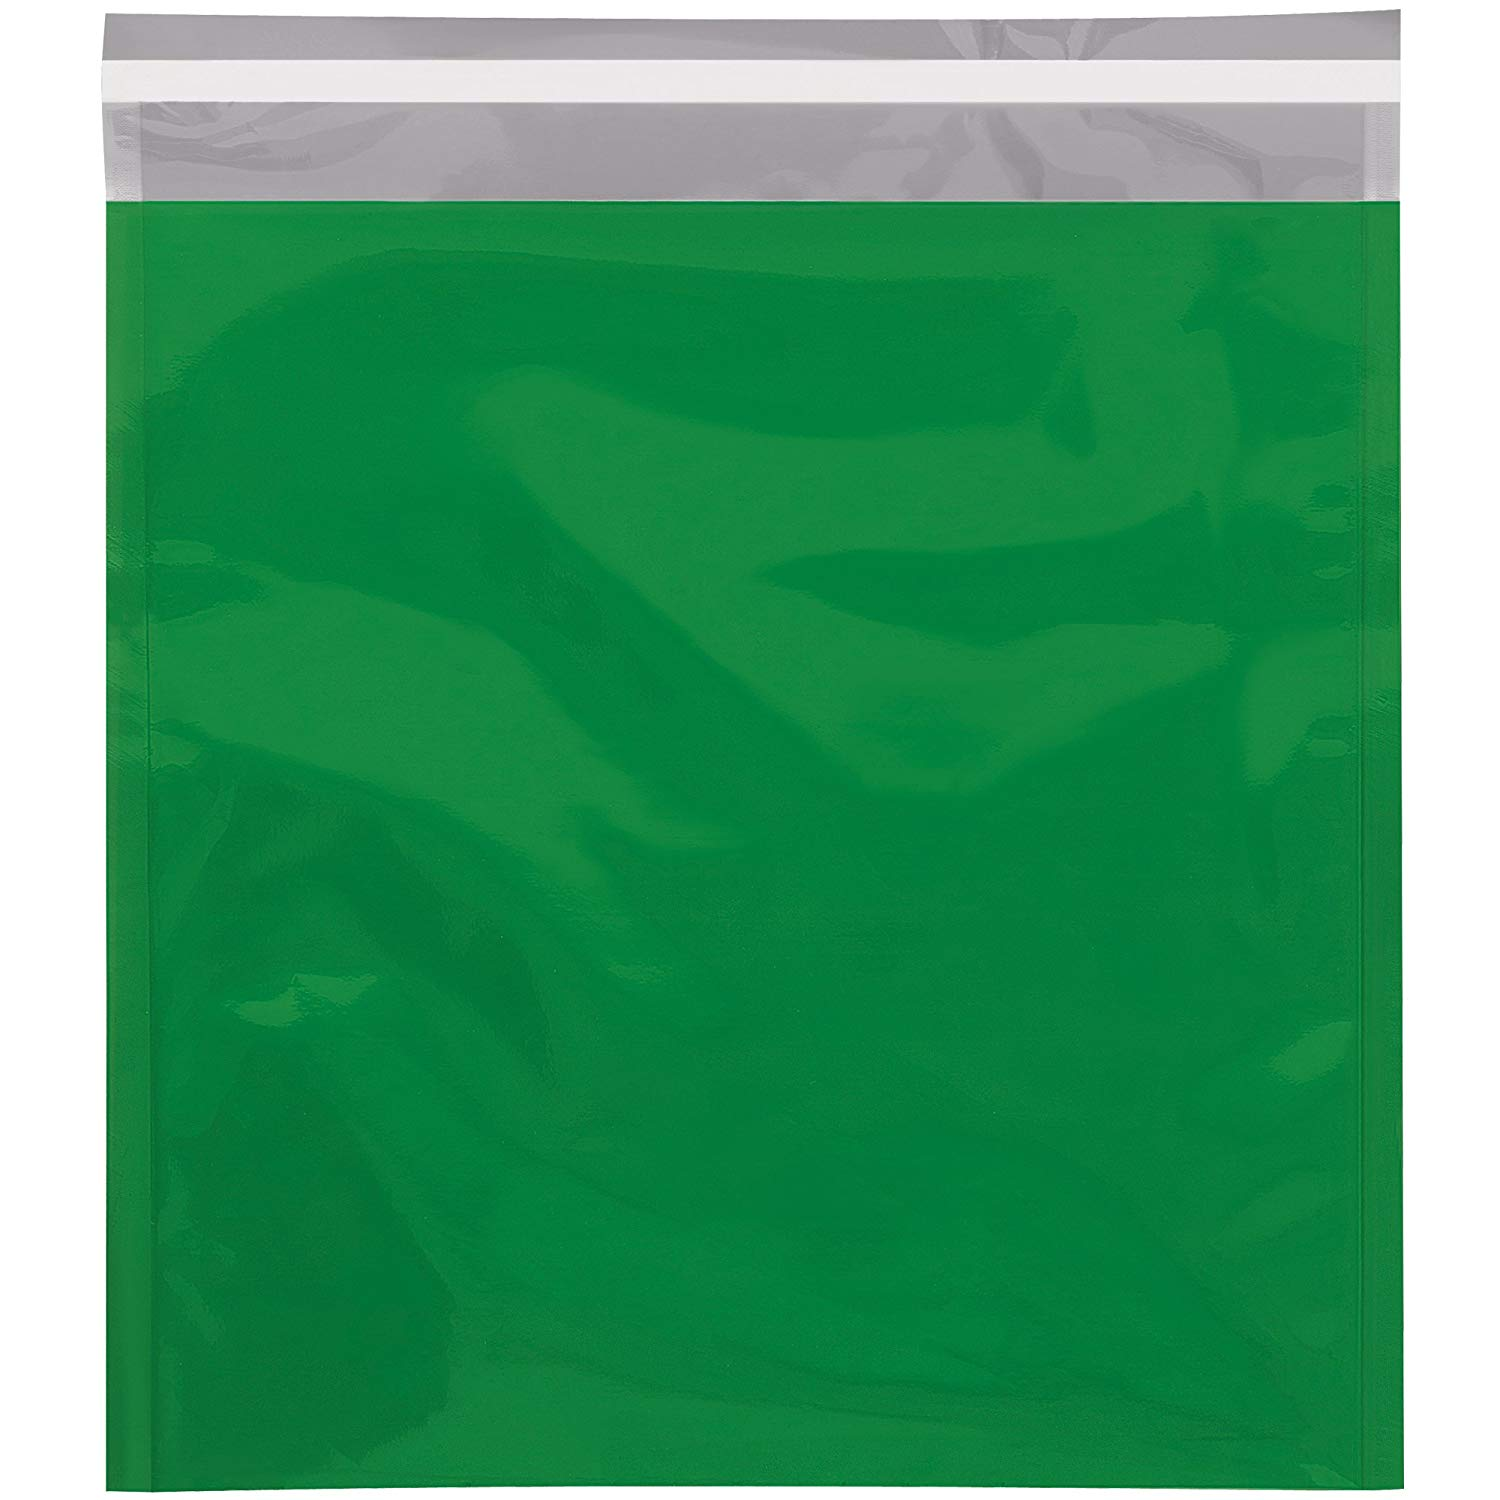 "Boxes Fast BFGFM1013GN Metallic Glamour Mailers, 10 3/4"" x 13"", Green (Pack of 250)"